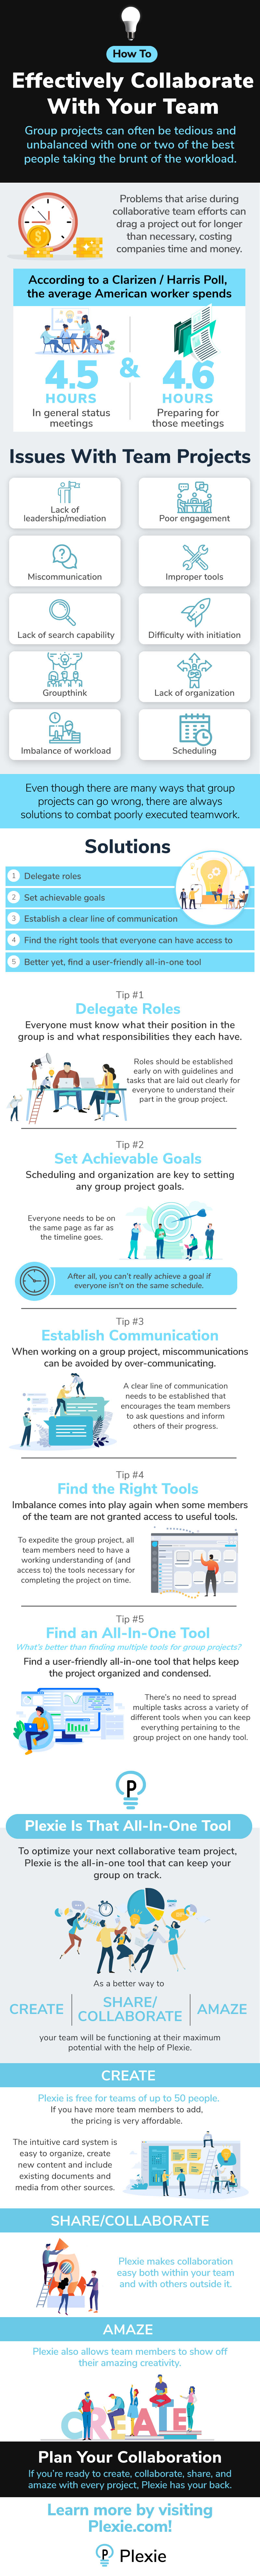 How To Effectively Collaborate With Your Team